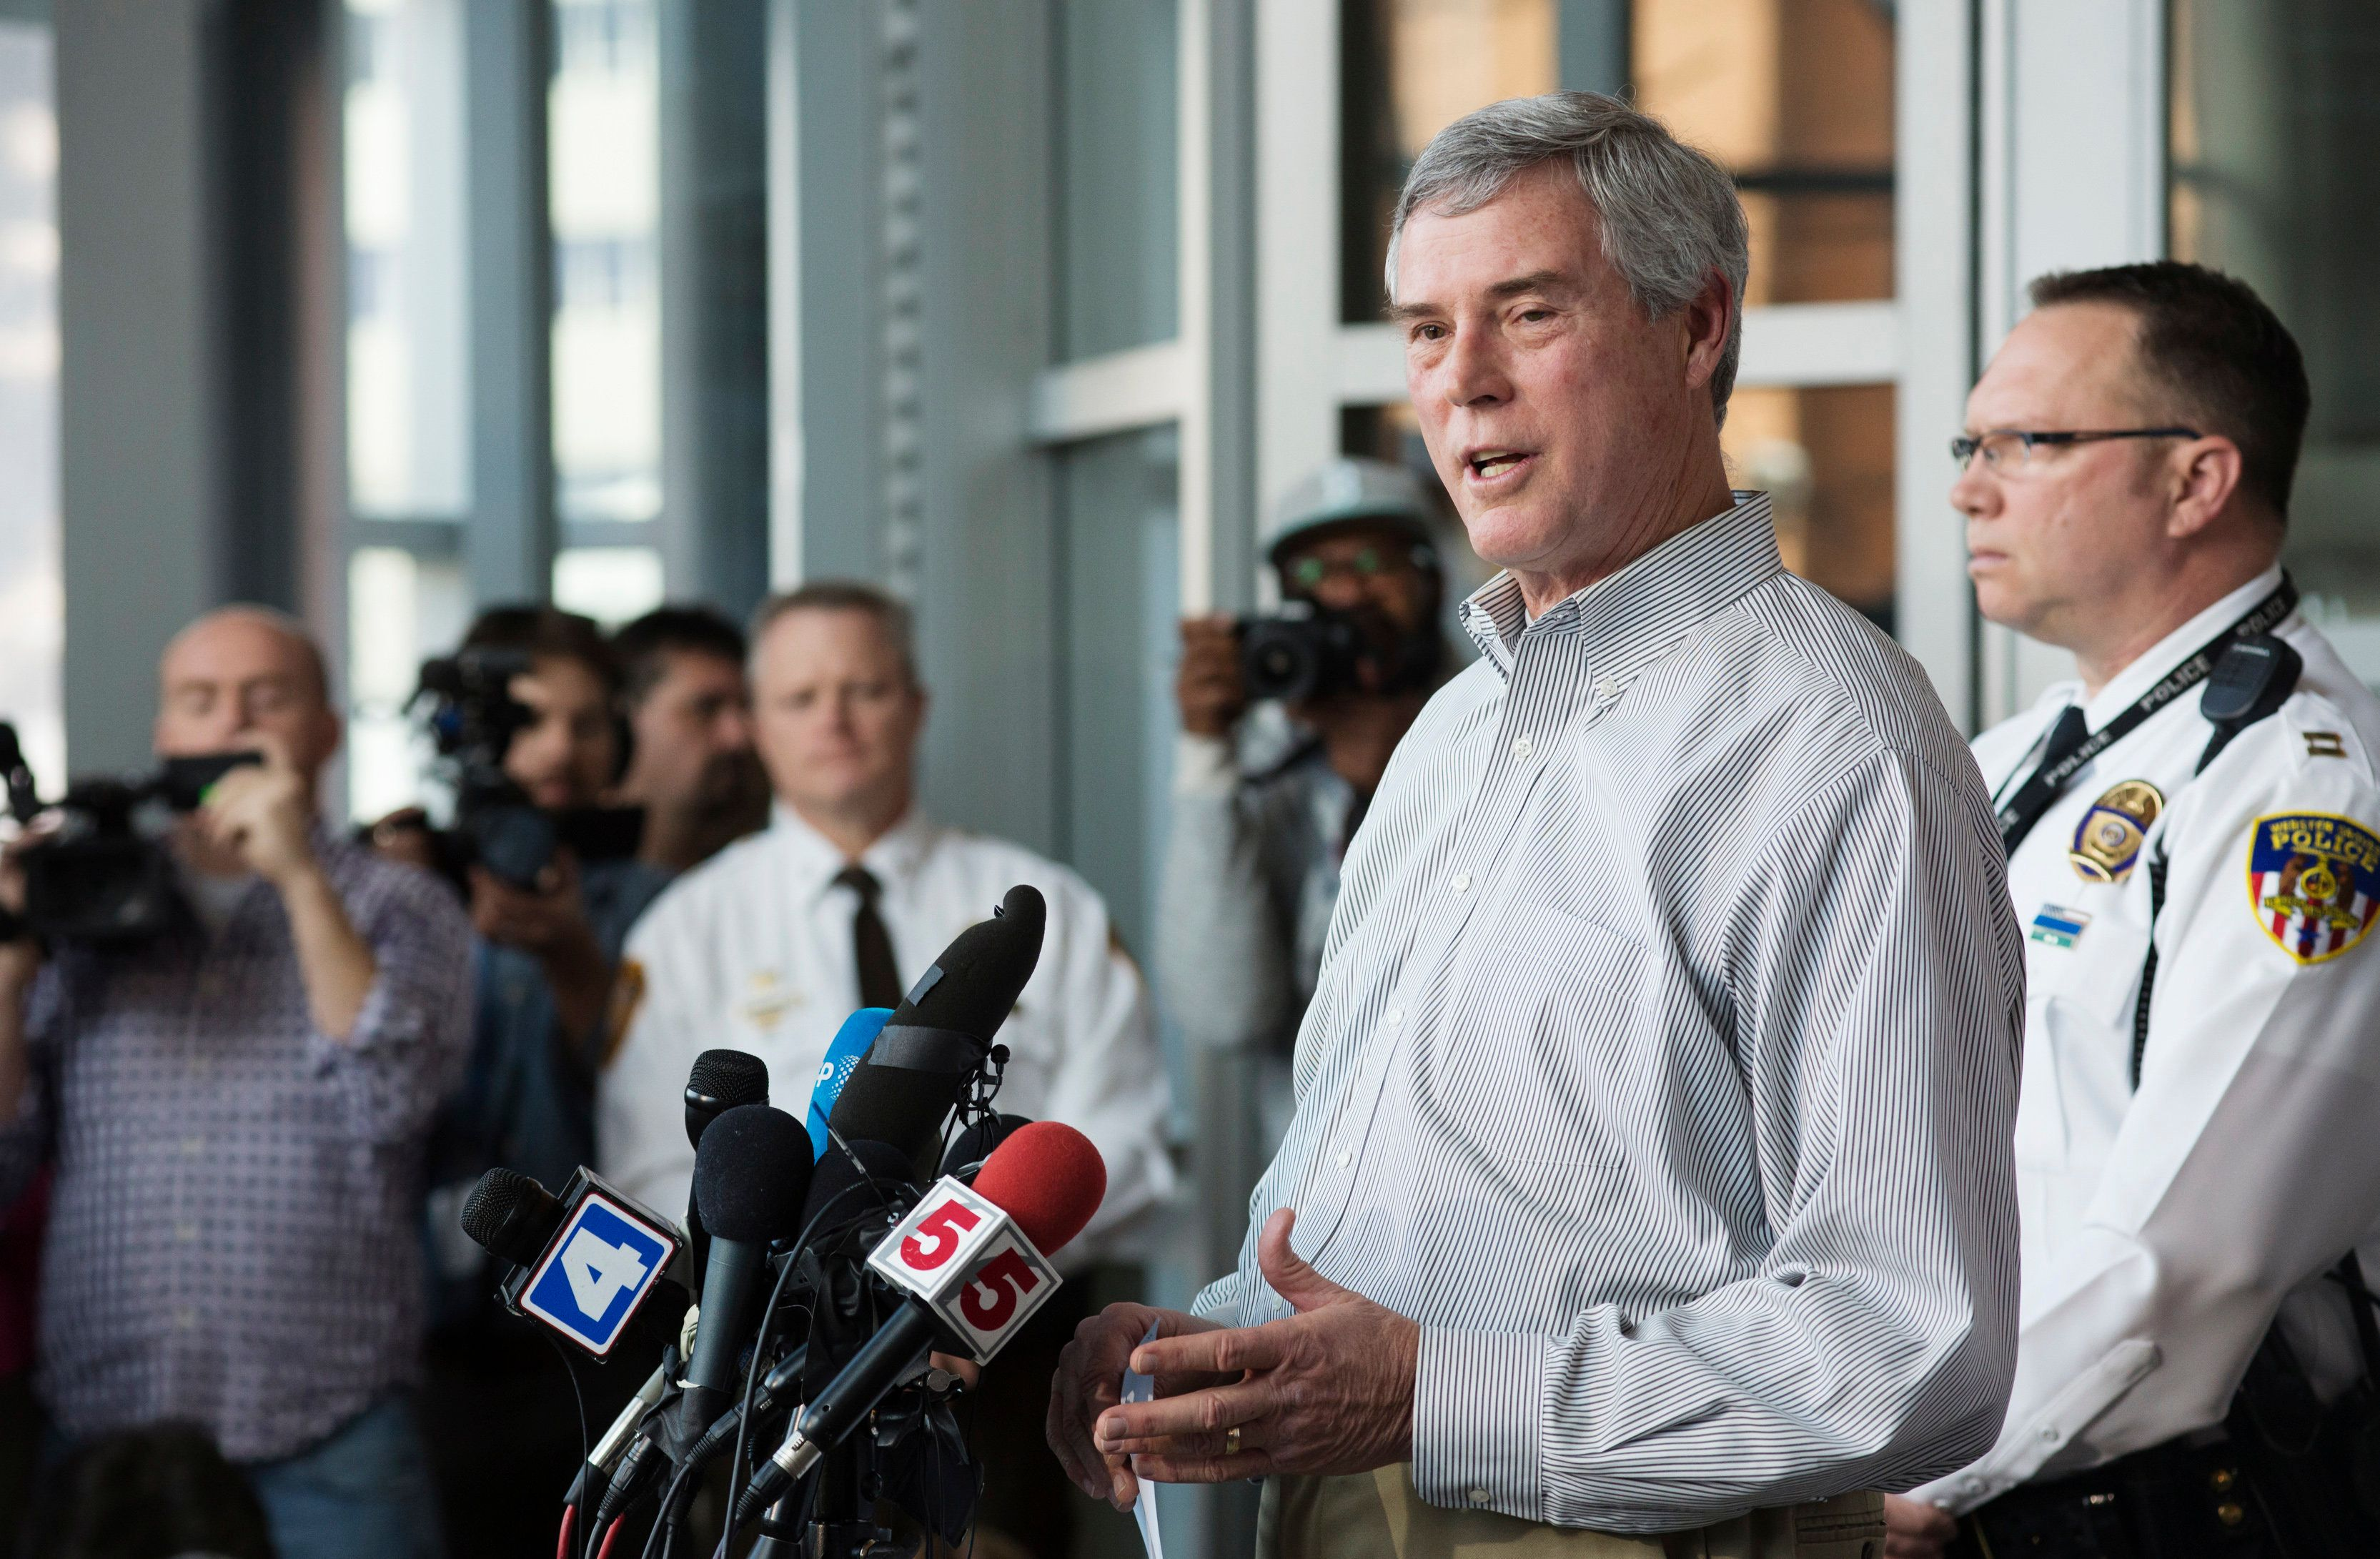 St. Louis County District Attorney Robert McCulloch at 2015 press conference about an arrest in connection with a shooting at